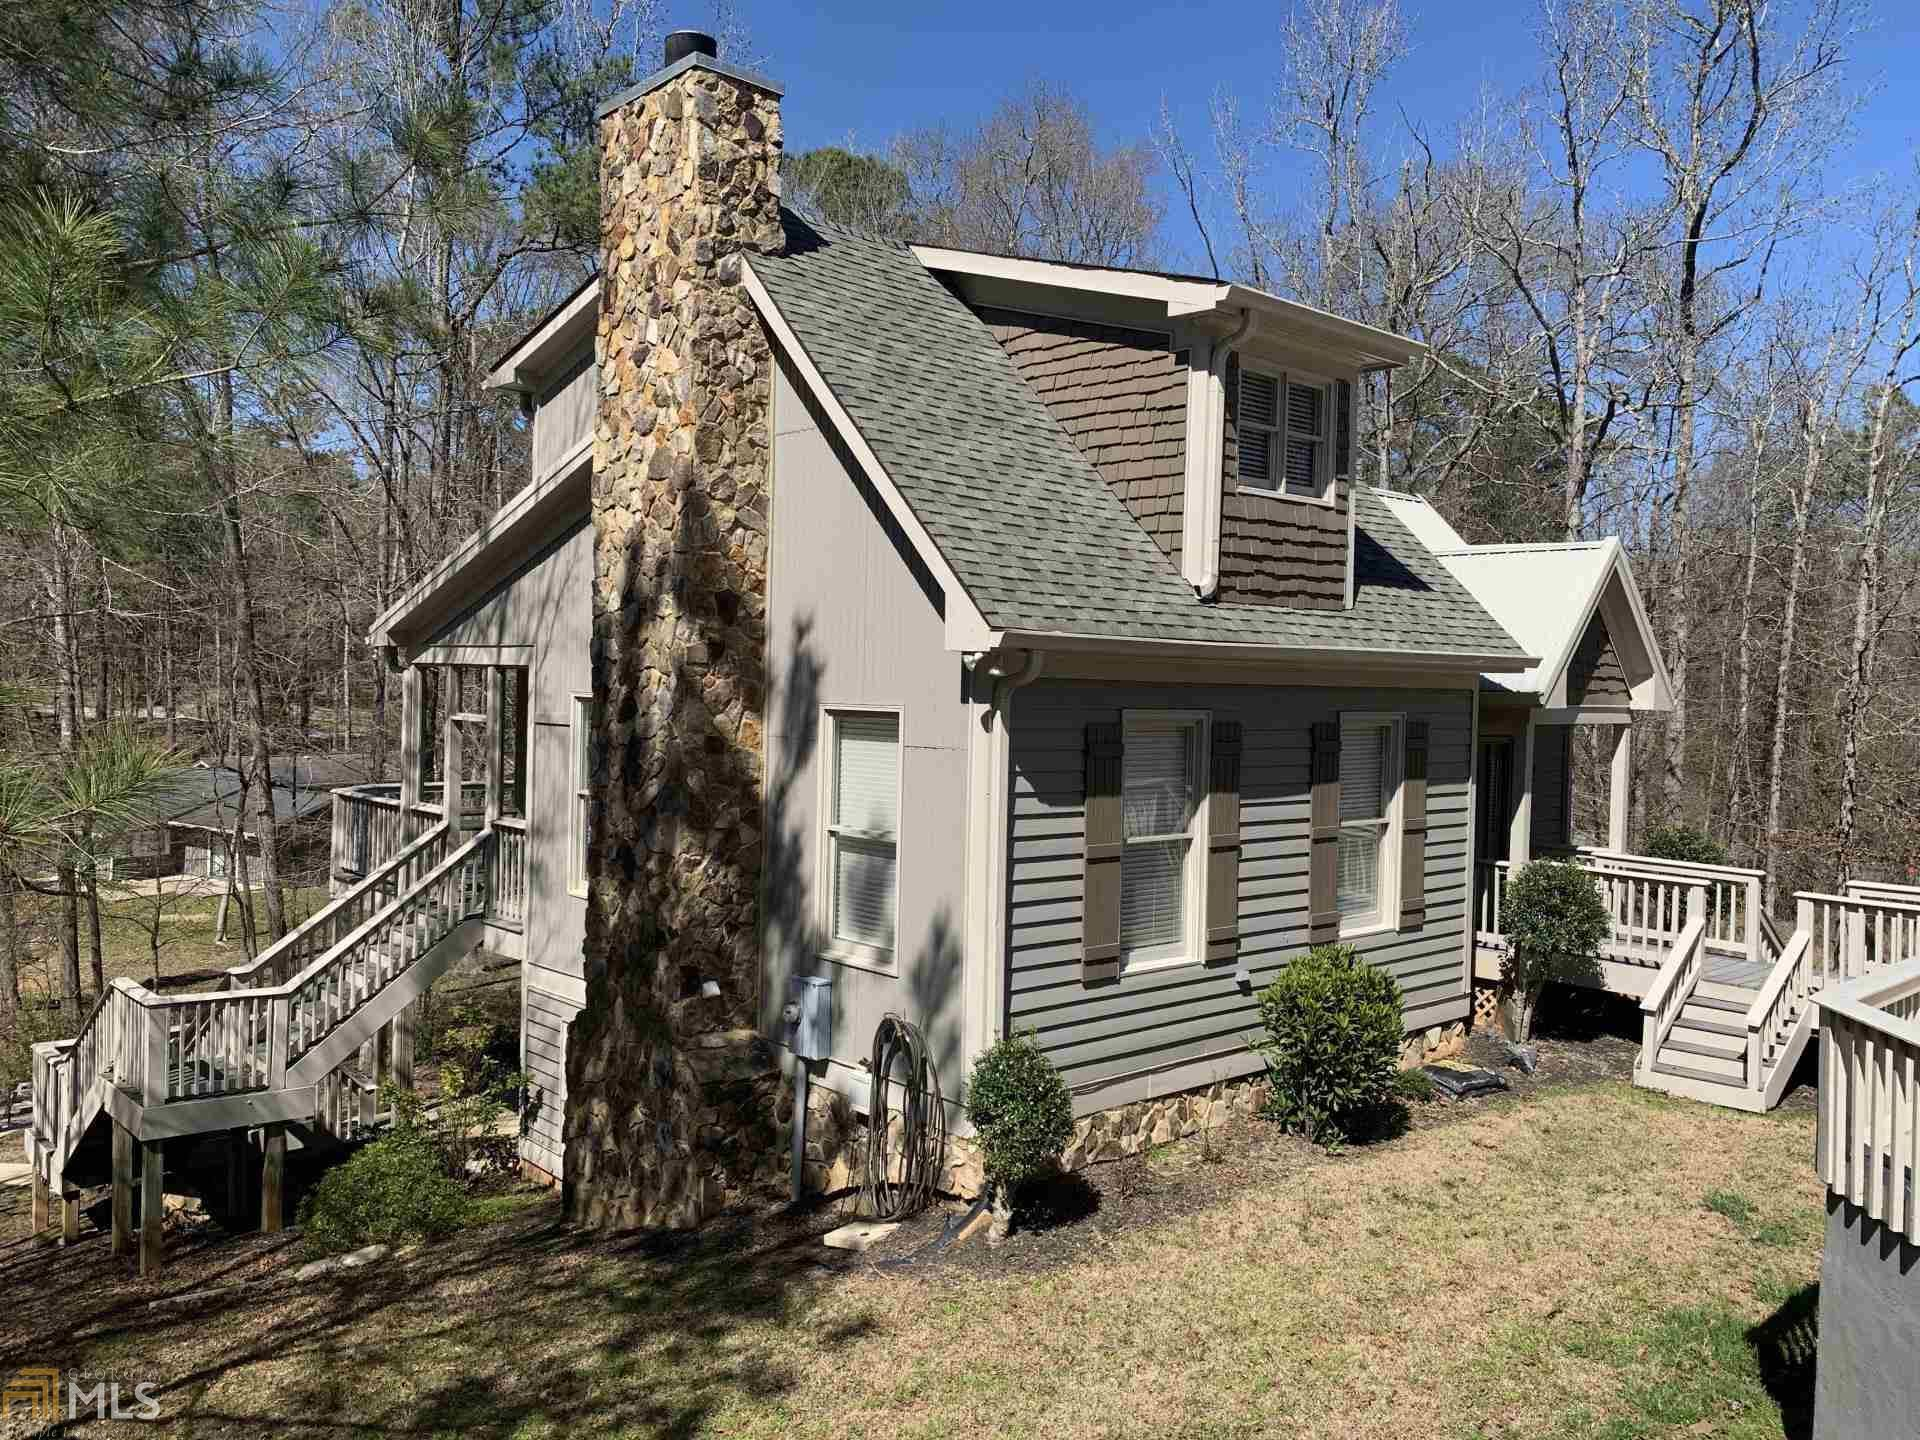 1720 Armour Bridge Rd, Greensboro, GA 30642 - MLS#: 8946649